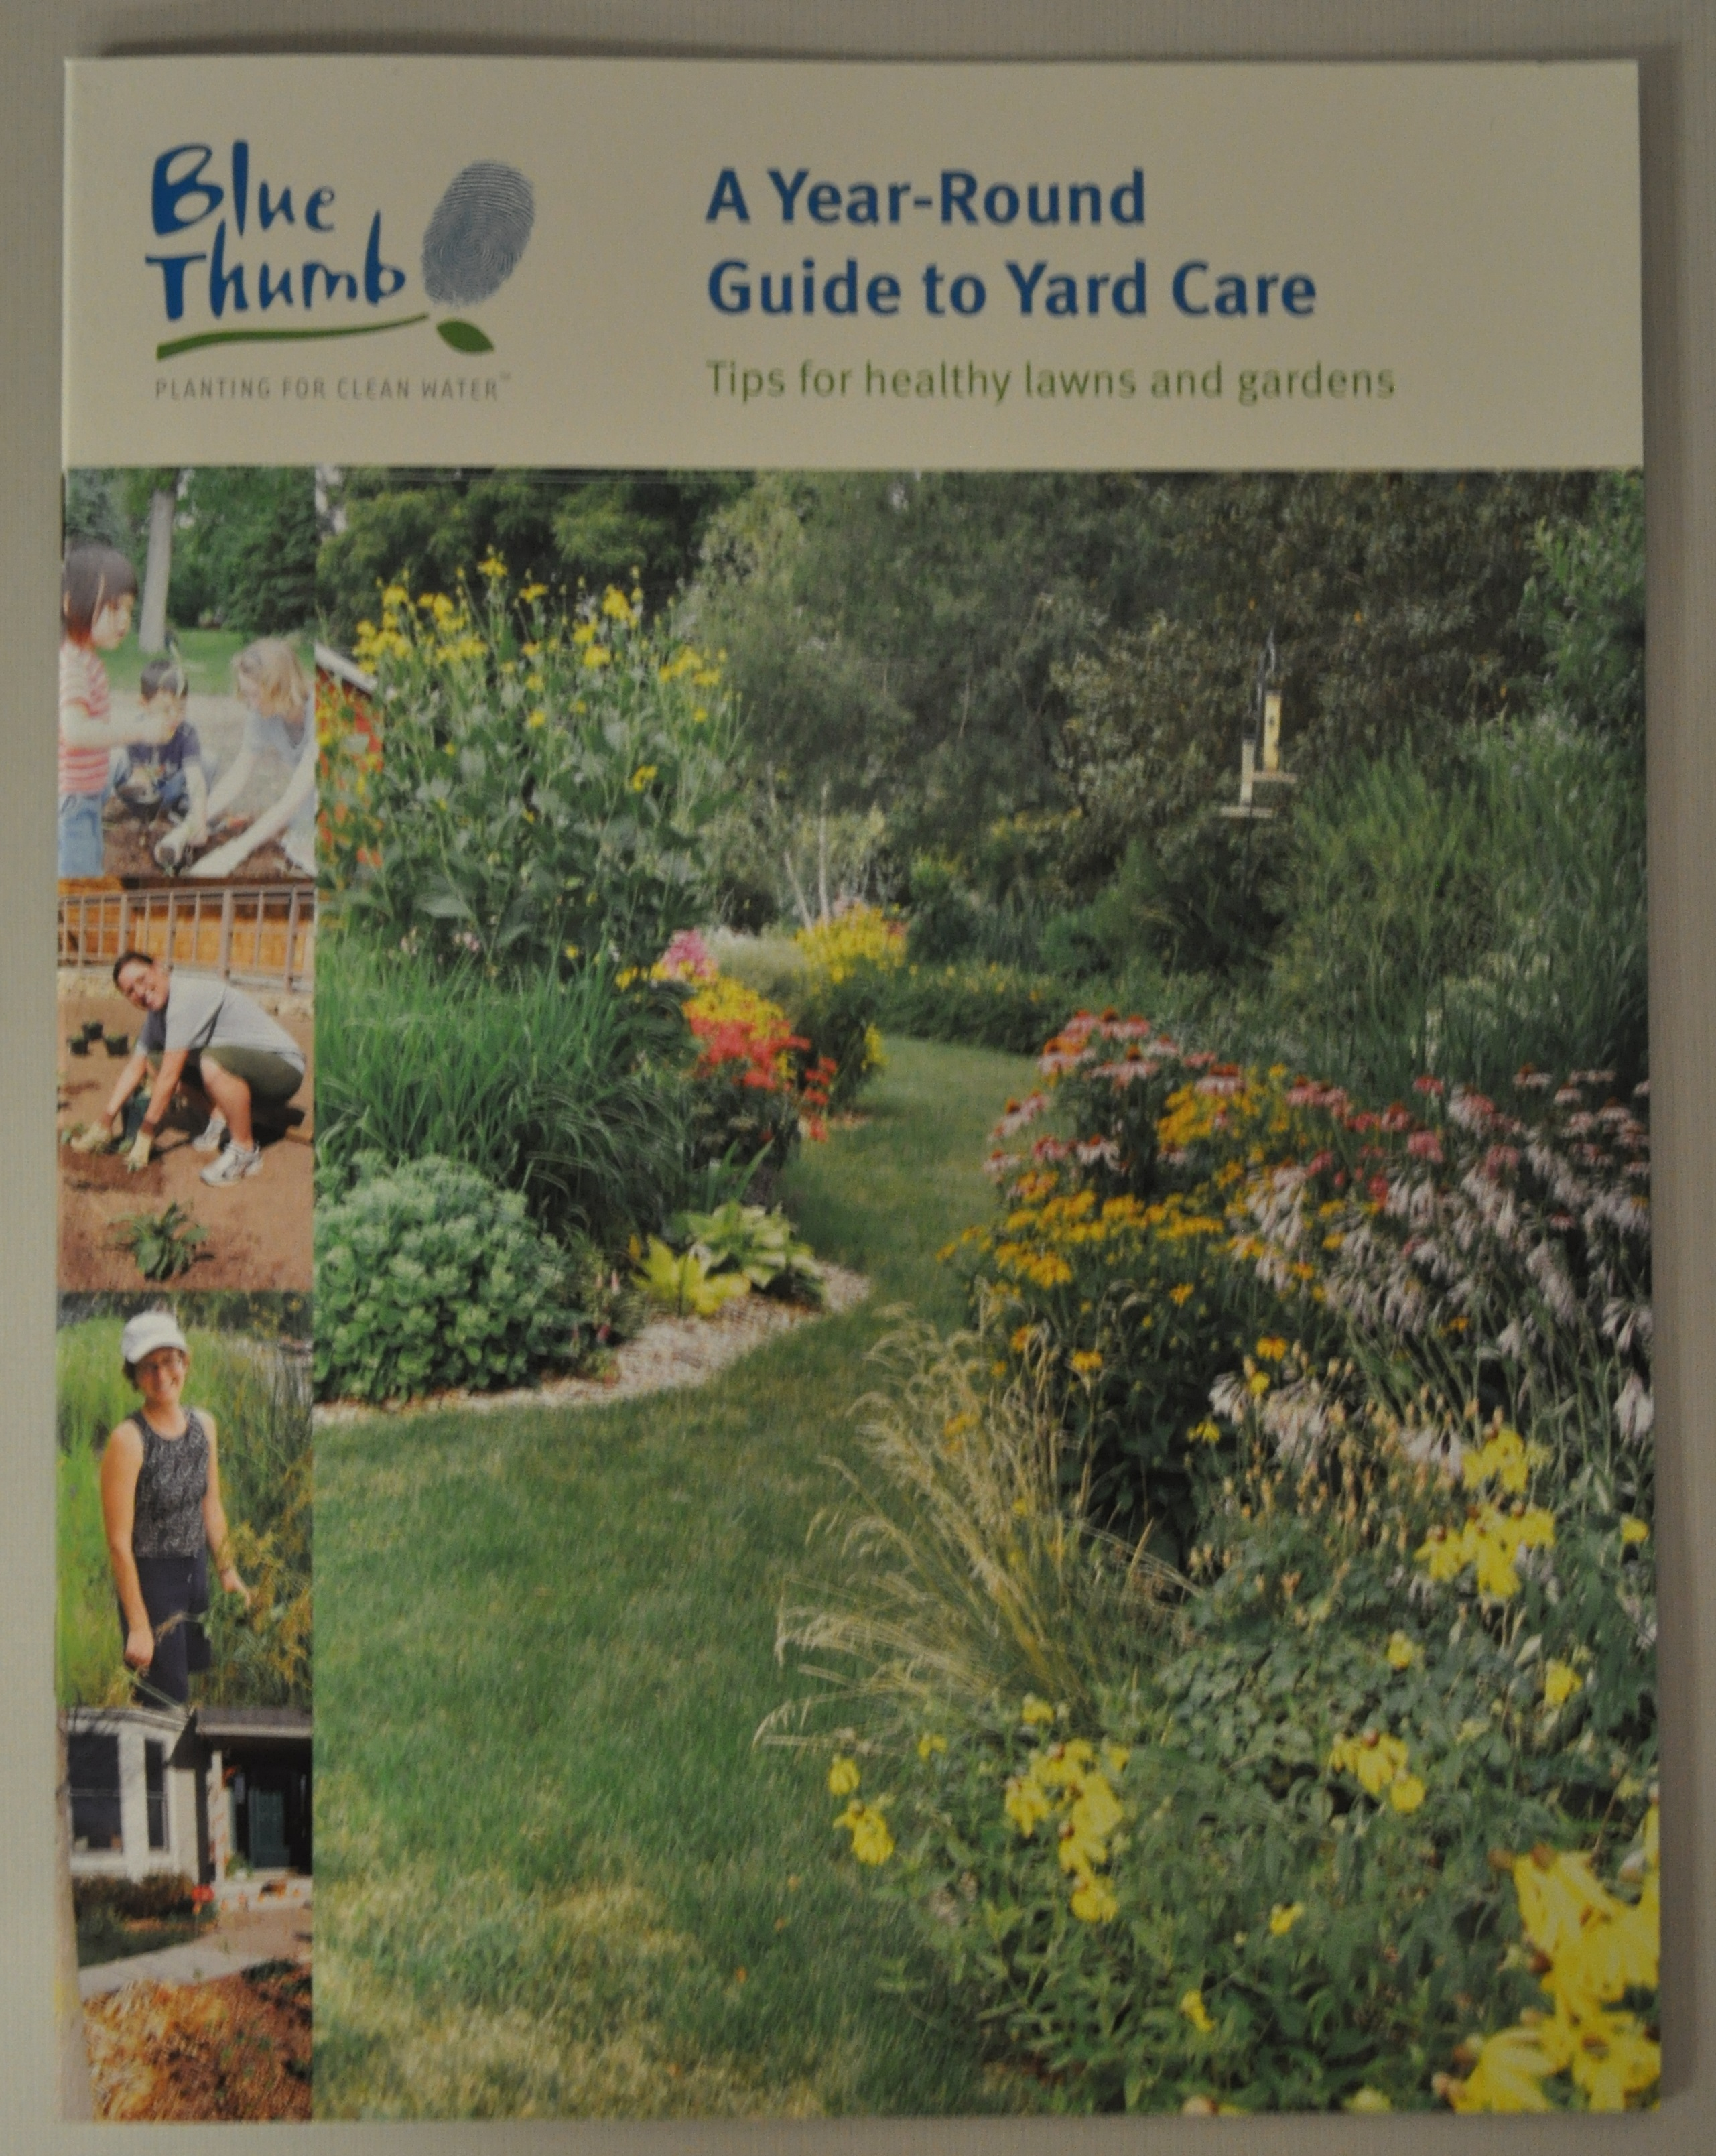 Blue Thumb A Year-Round Guide to Yard Care